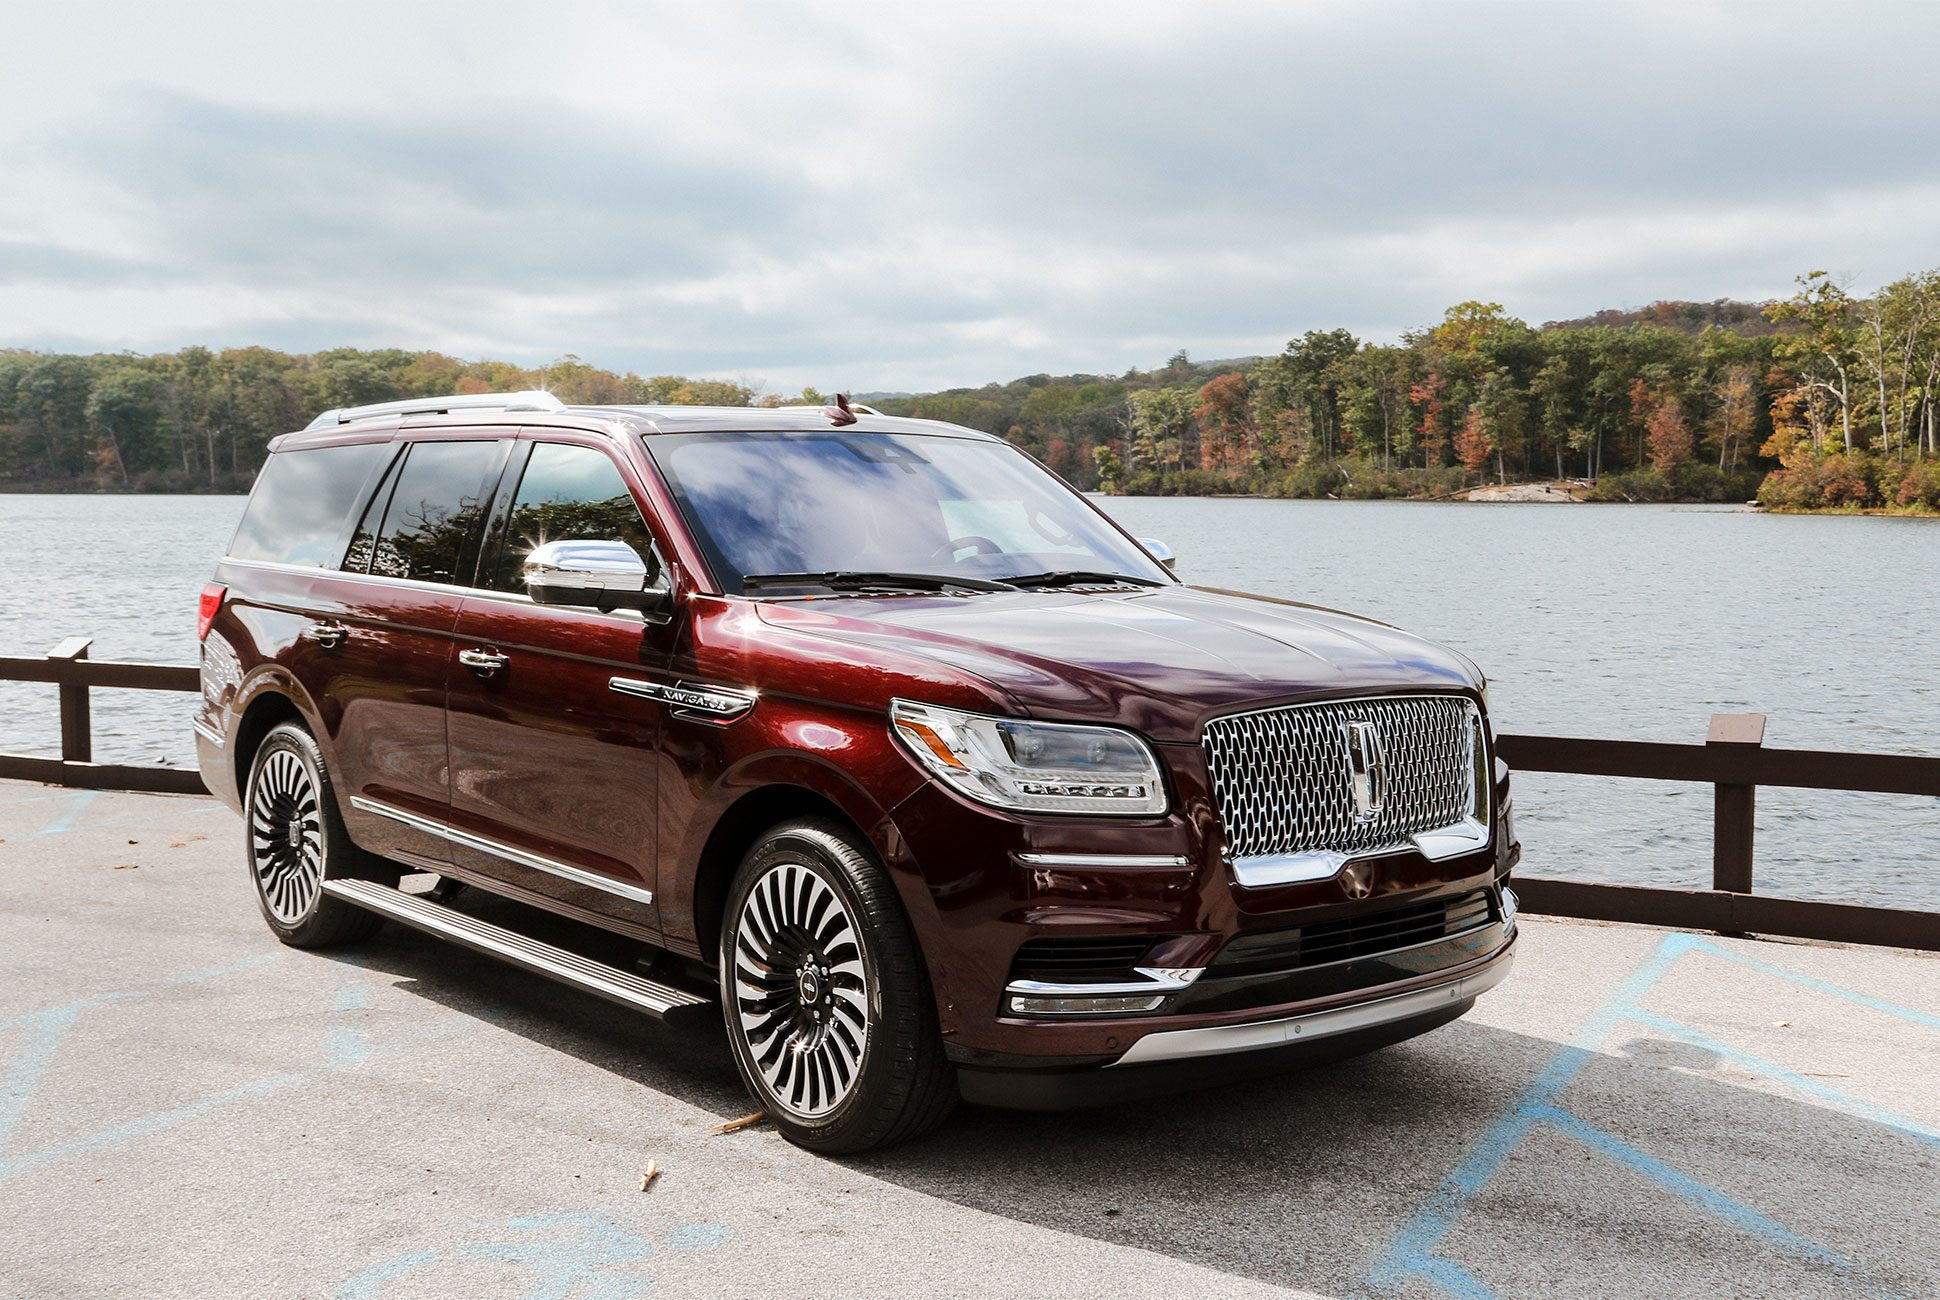 2018 Escalade Suv >> Large Luxury SUV Sales In America – March 2018 | GCBC